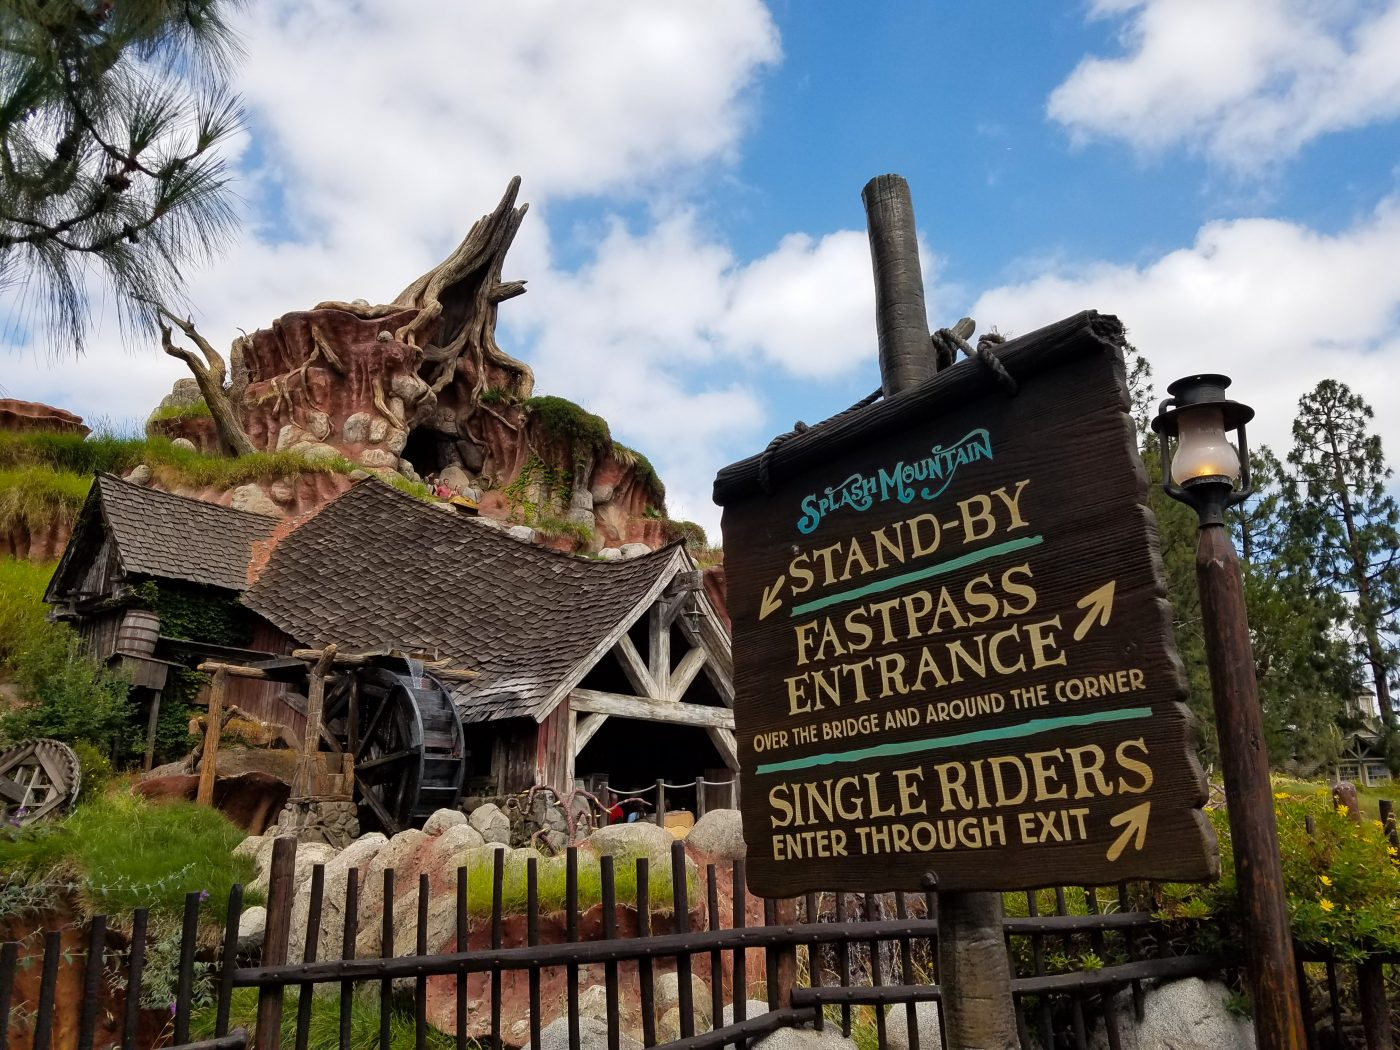 ride breaks down at Disney Splash Mountain